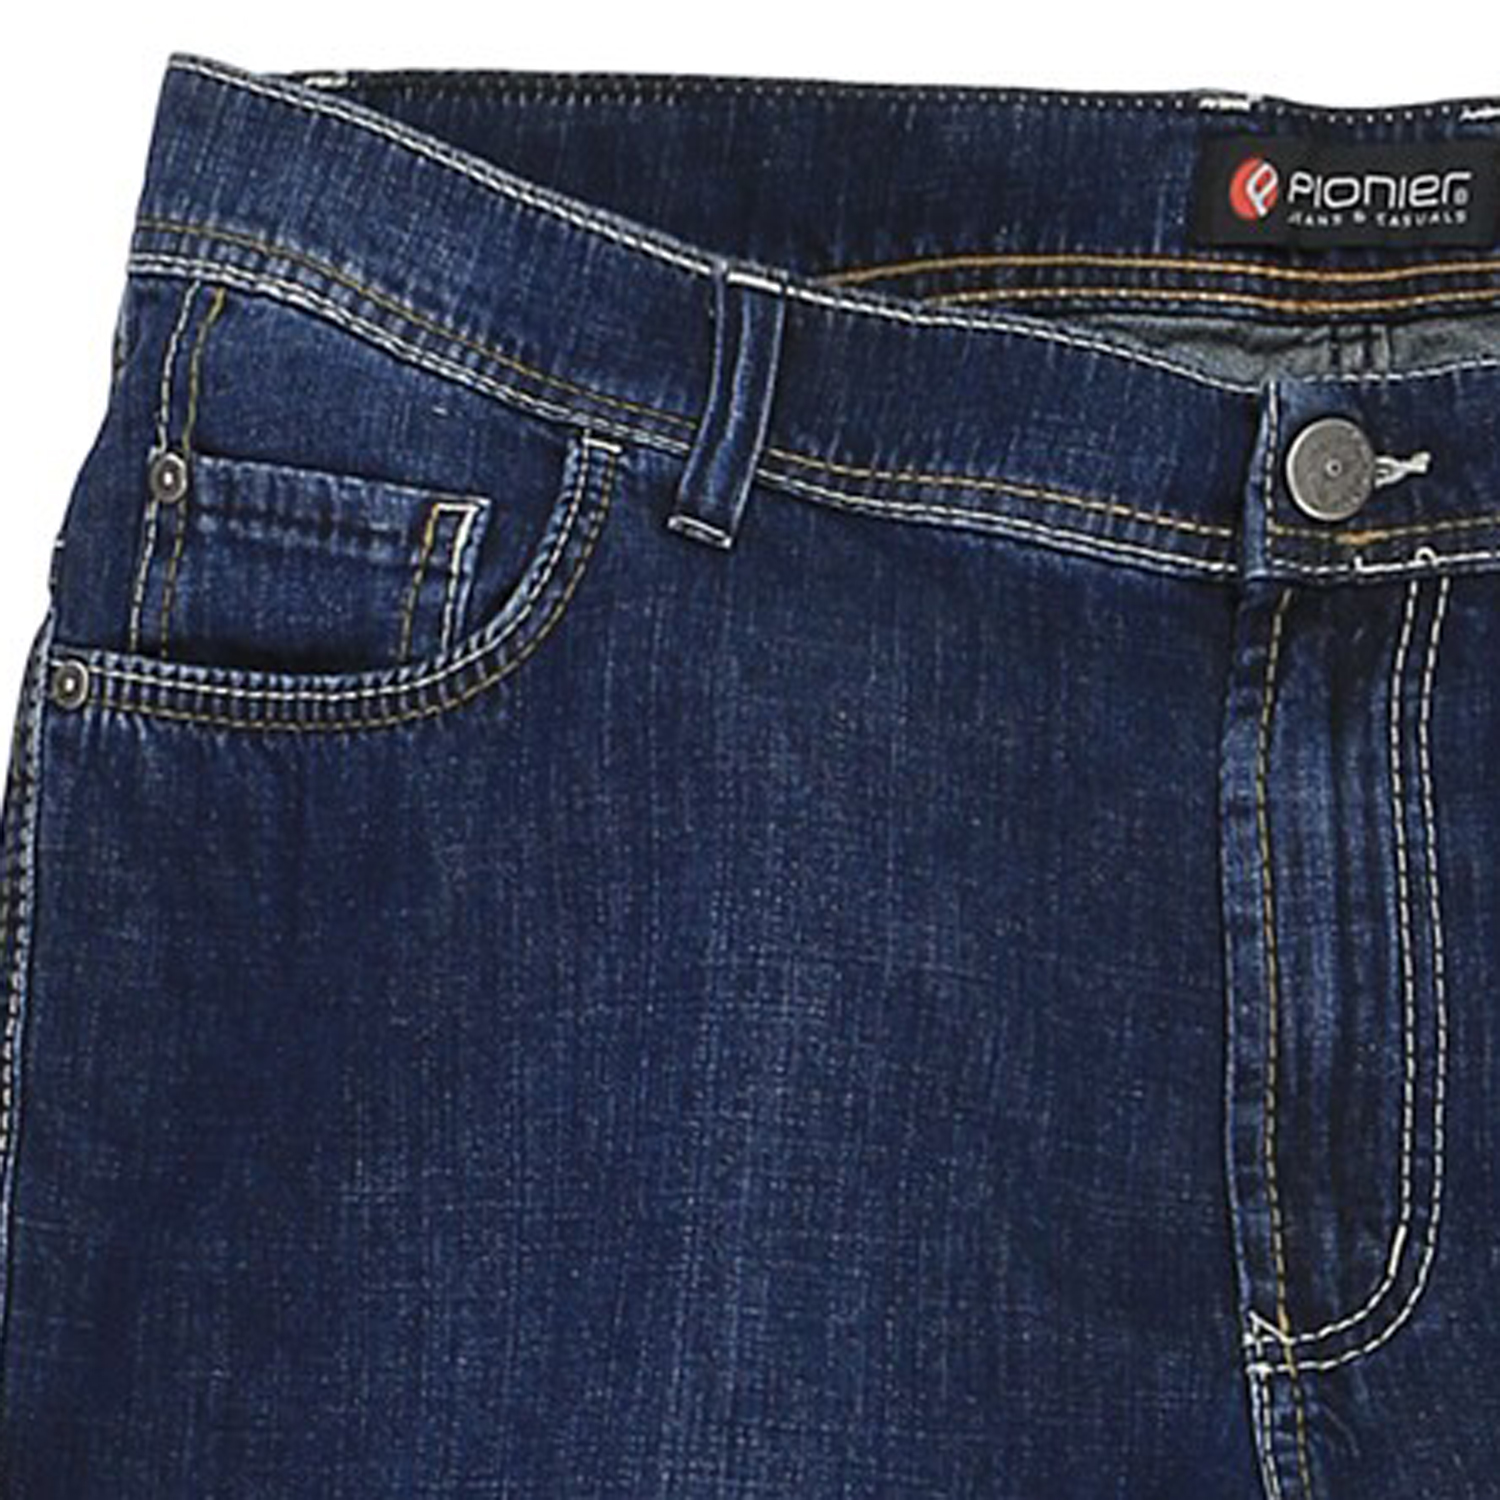 Detail Image to Short Jeans by Pionier in king sizes / dark blue